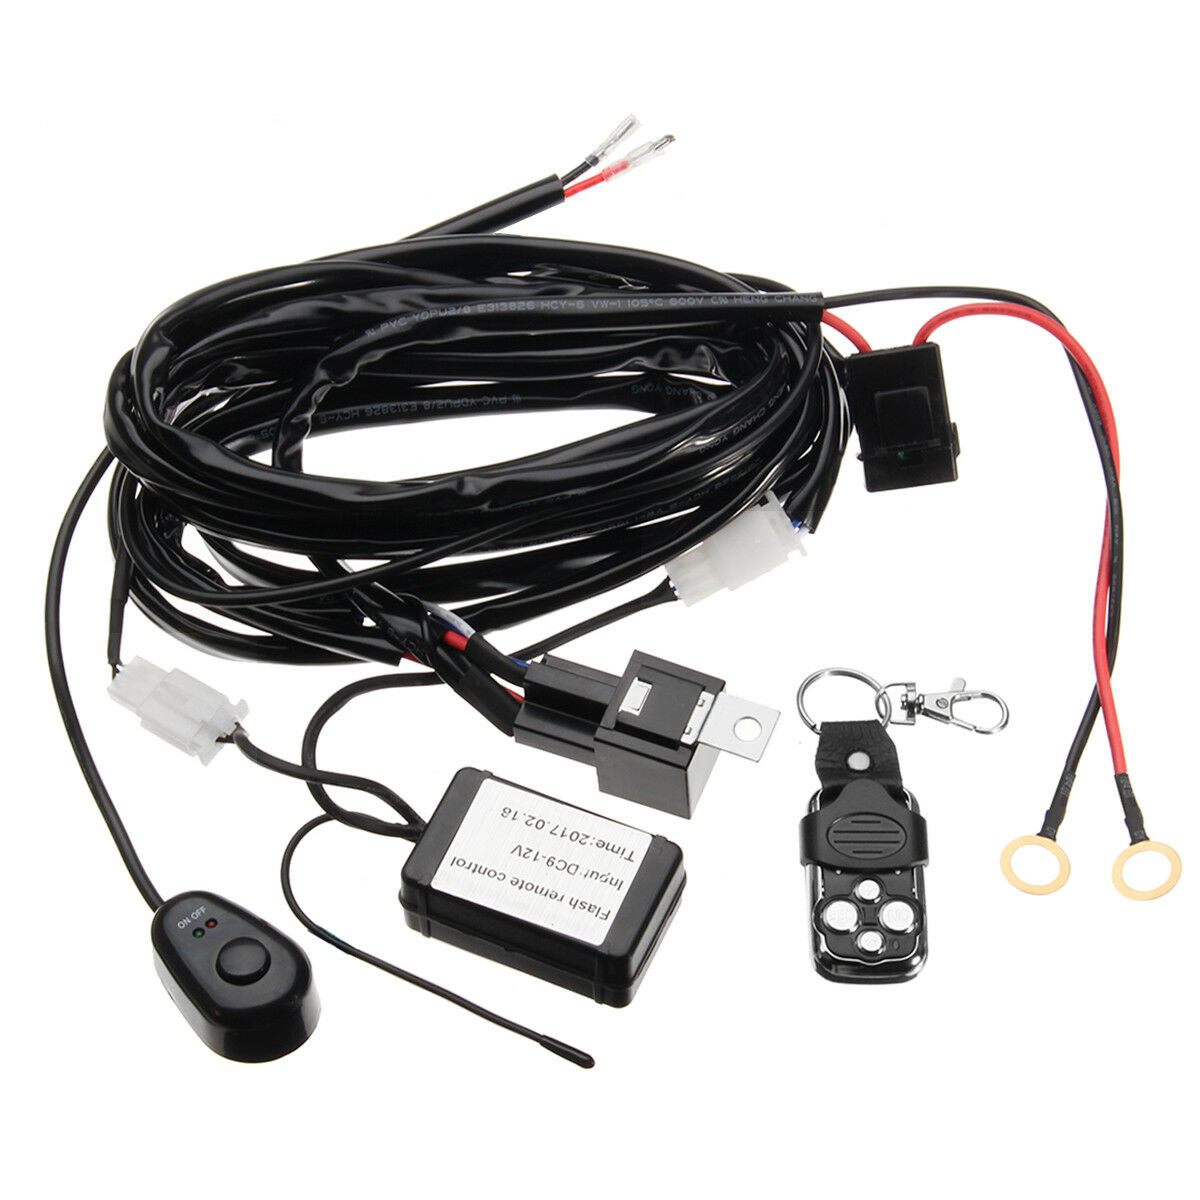 2m Remote Control Wiring Harness Switch Relay Kit Led Work Light Bar Hid Driving 40a 12v Ebay 2 Leads 1 Of 8free Shipping See More